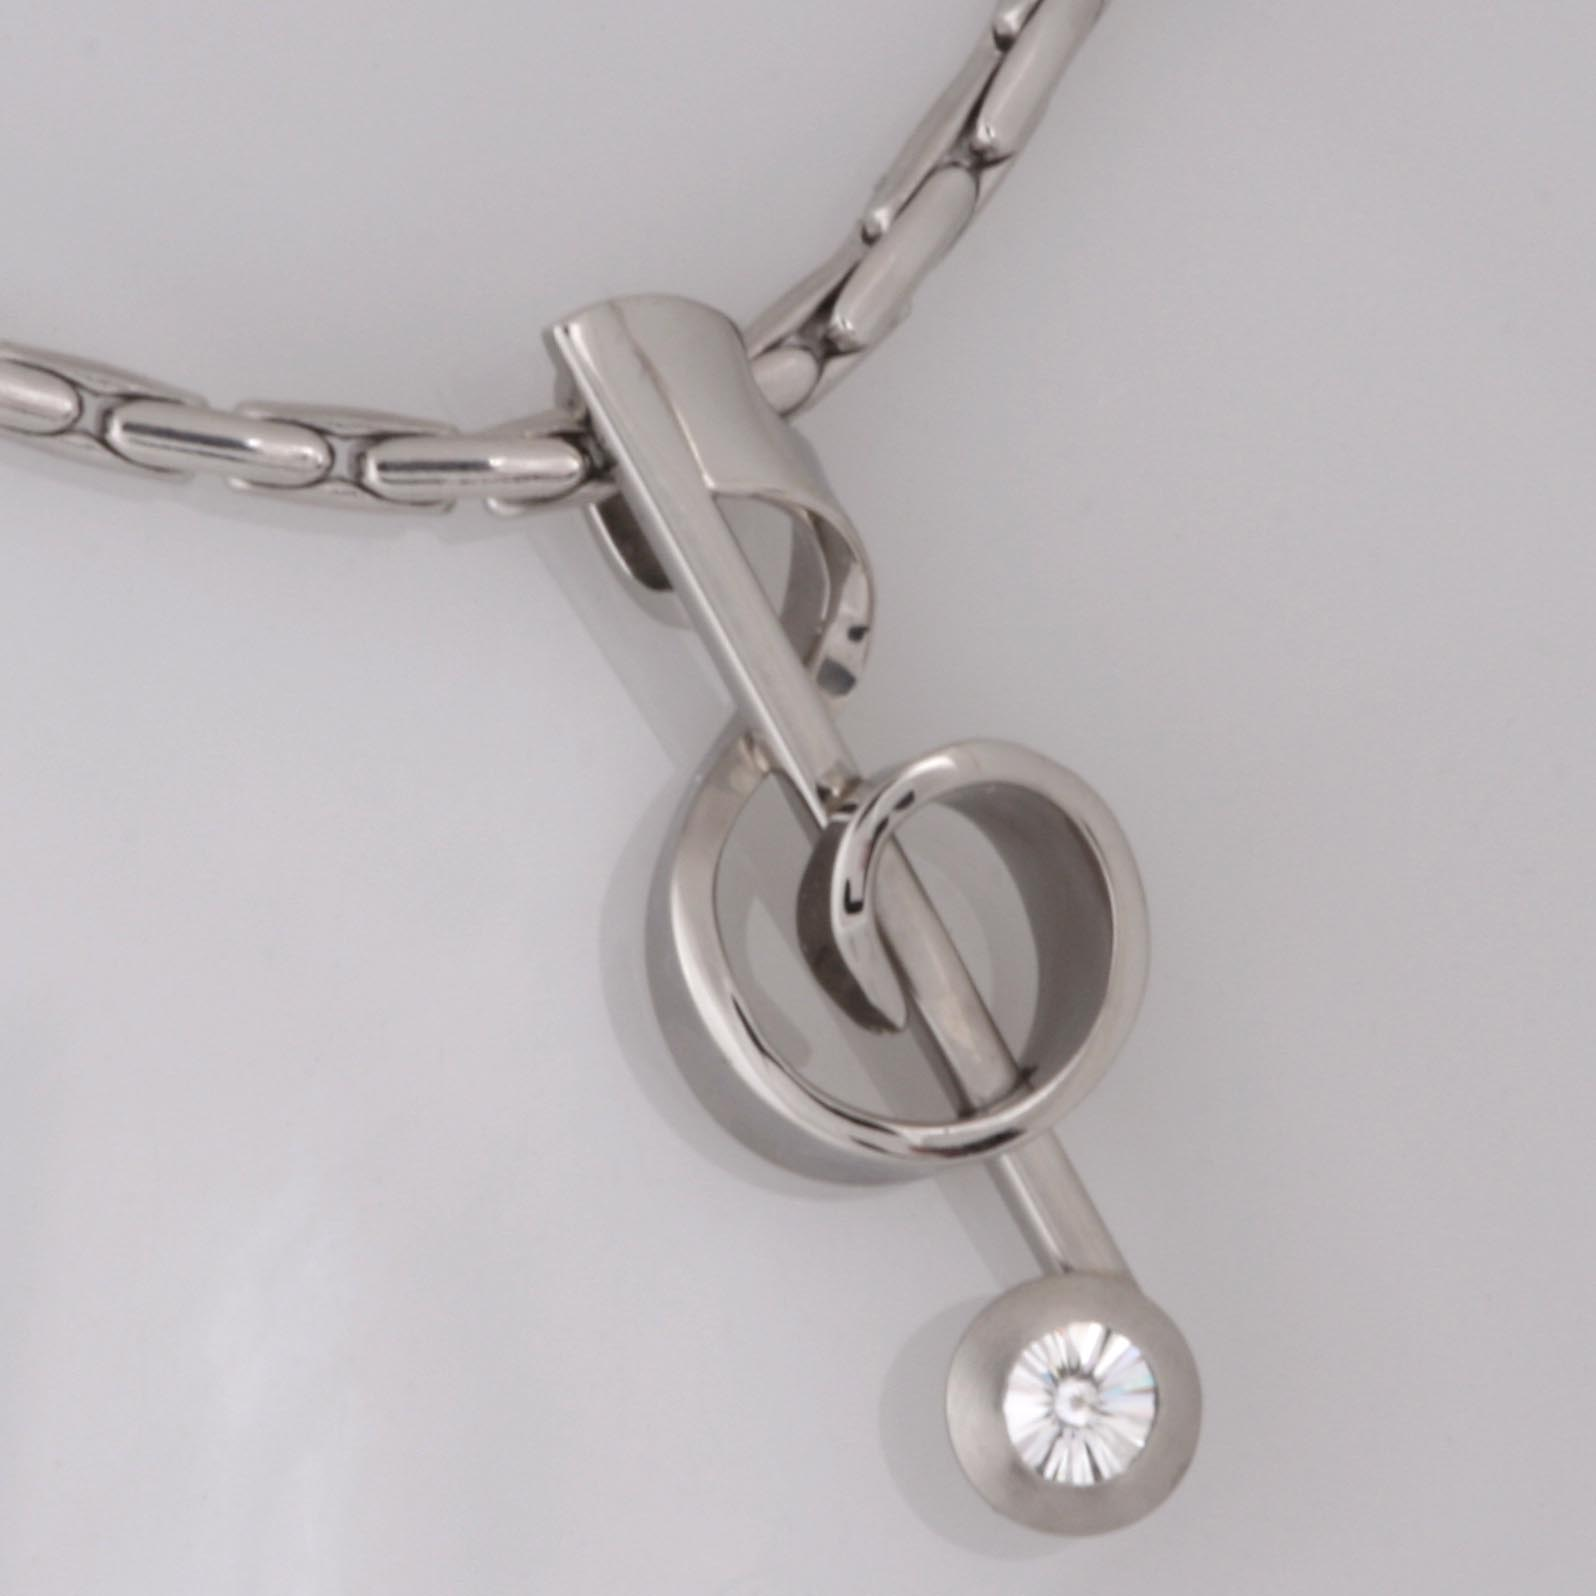 Handmade palladium Treble Clef pendant with a 'Spirit' cut diamond